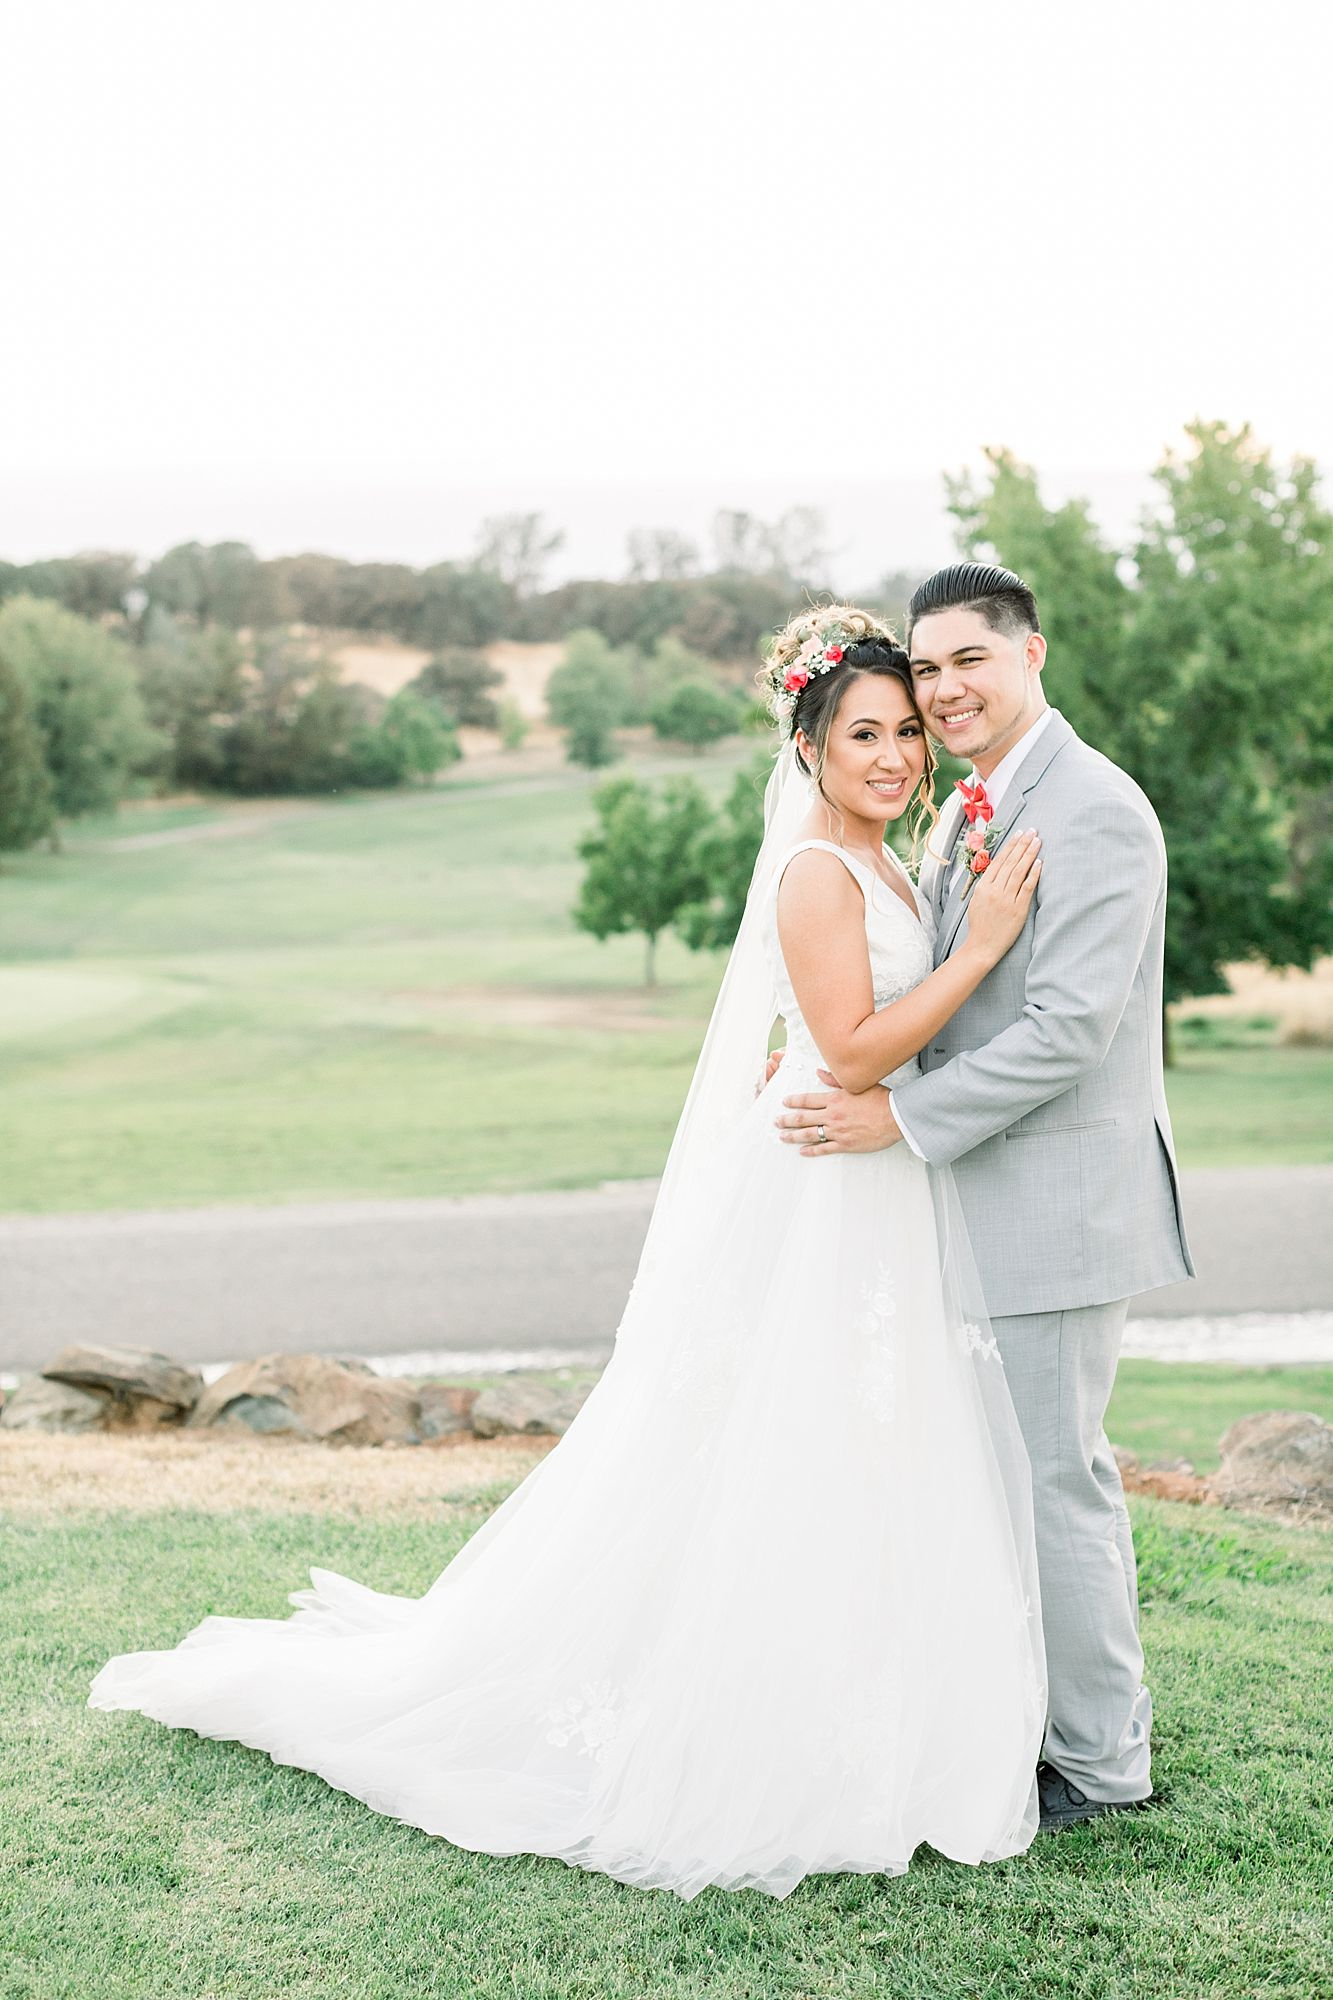 Auburn Valley Golf Club Wedding - Ashley Baumgartner - Auburn Wedding Photographer and Sacramento Wedding Photography_0044.jpg